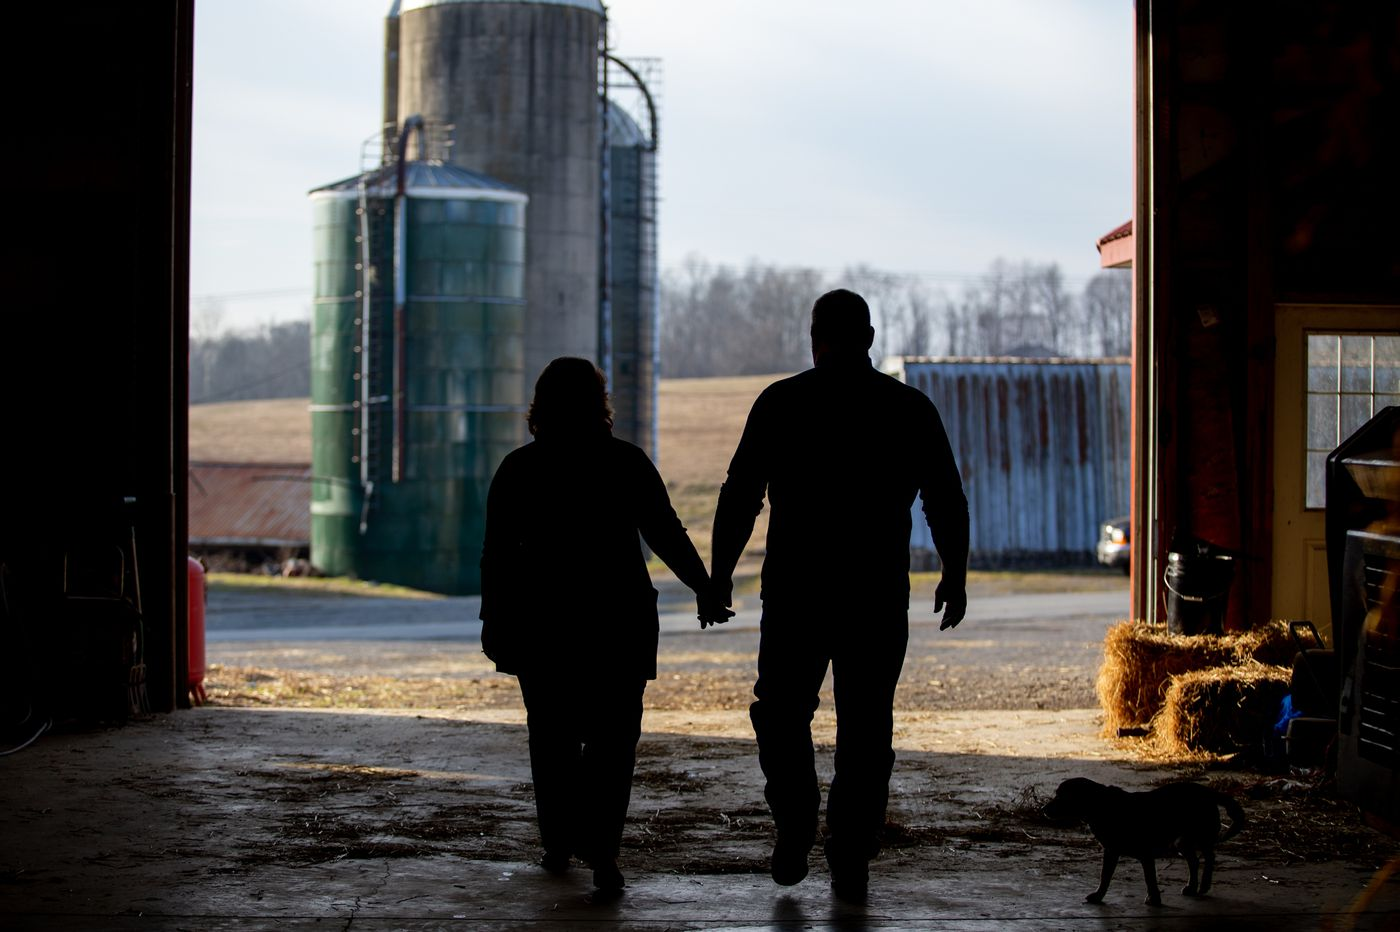 Chester County preserves 500th farm in open-space initiative